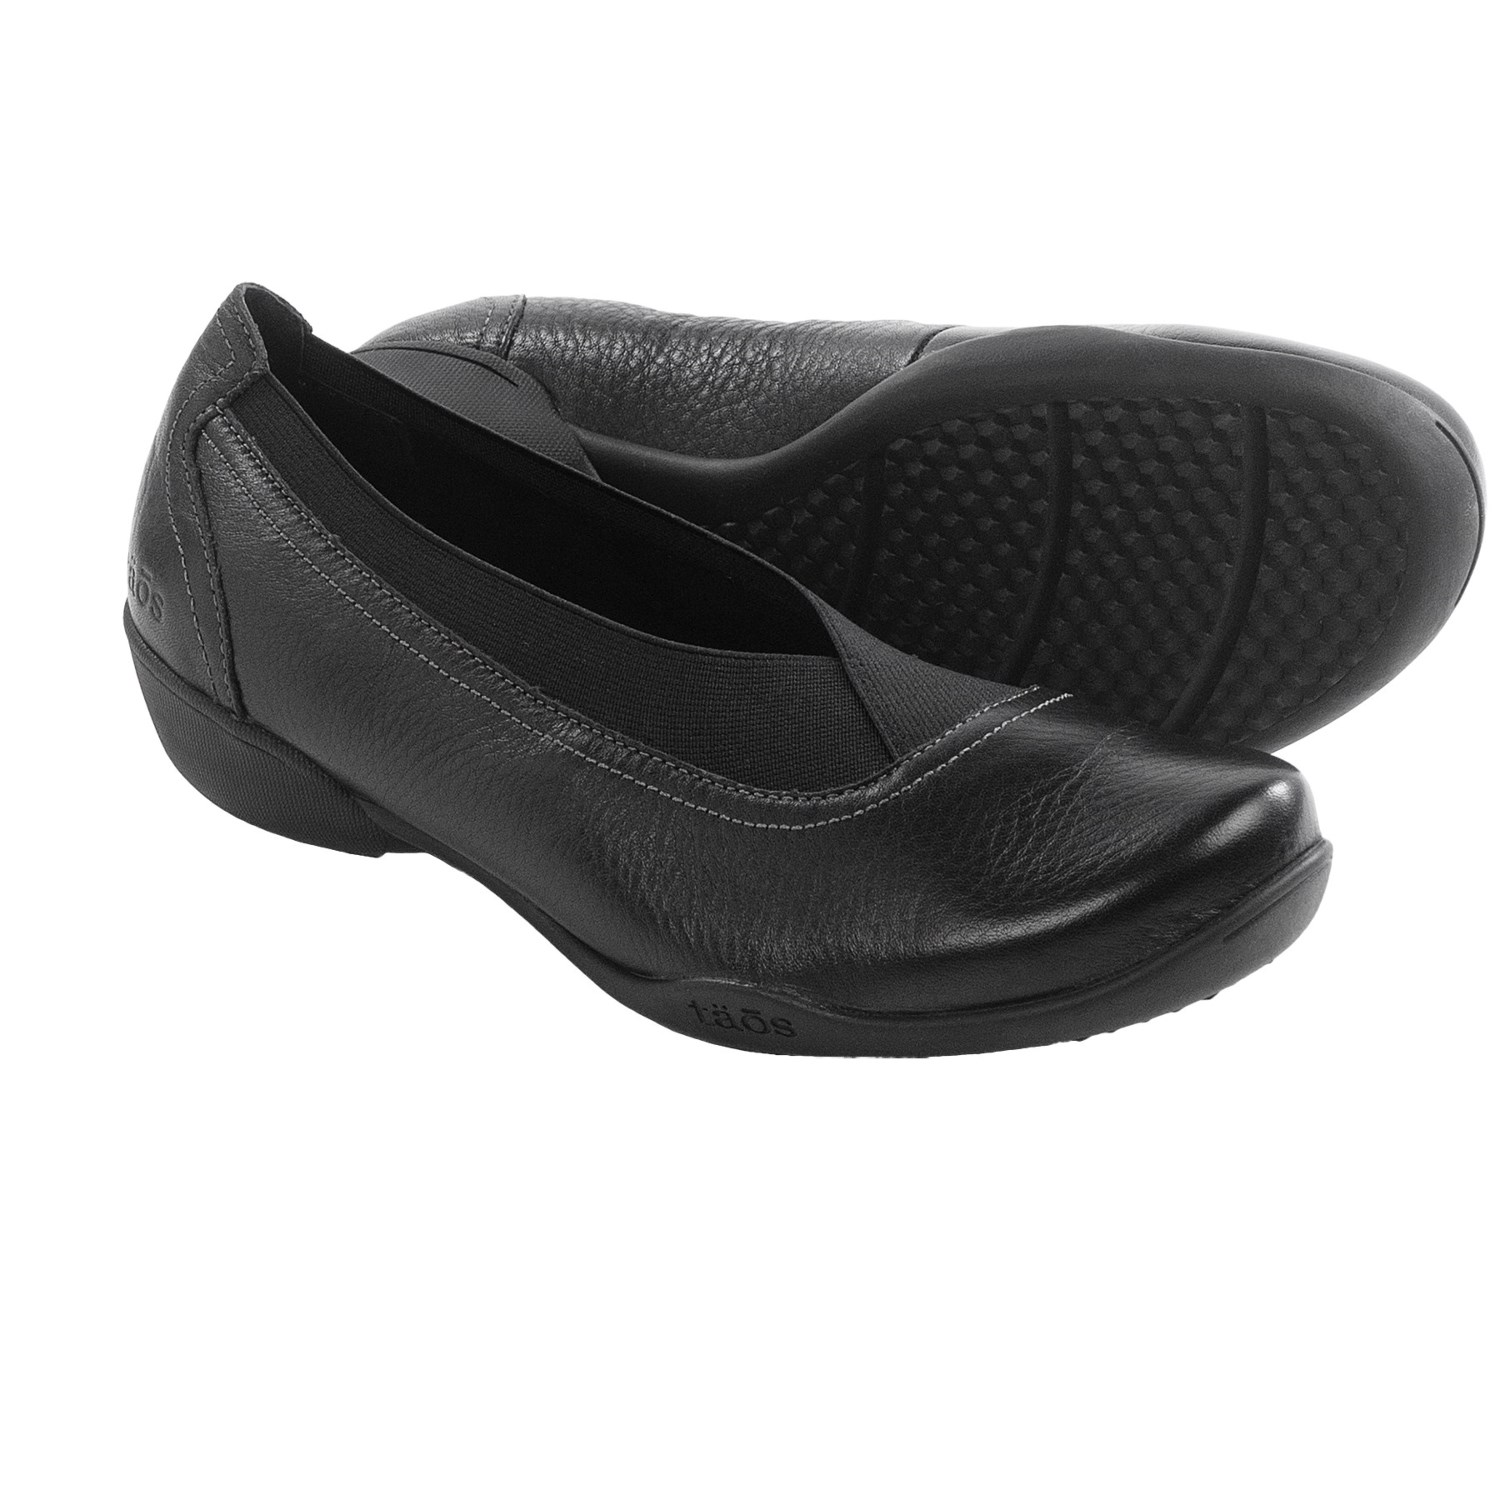 Taos Footwear Slip On Shoes